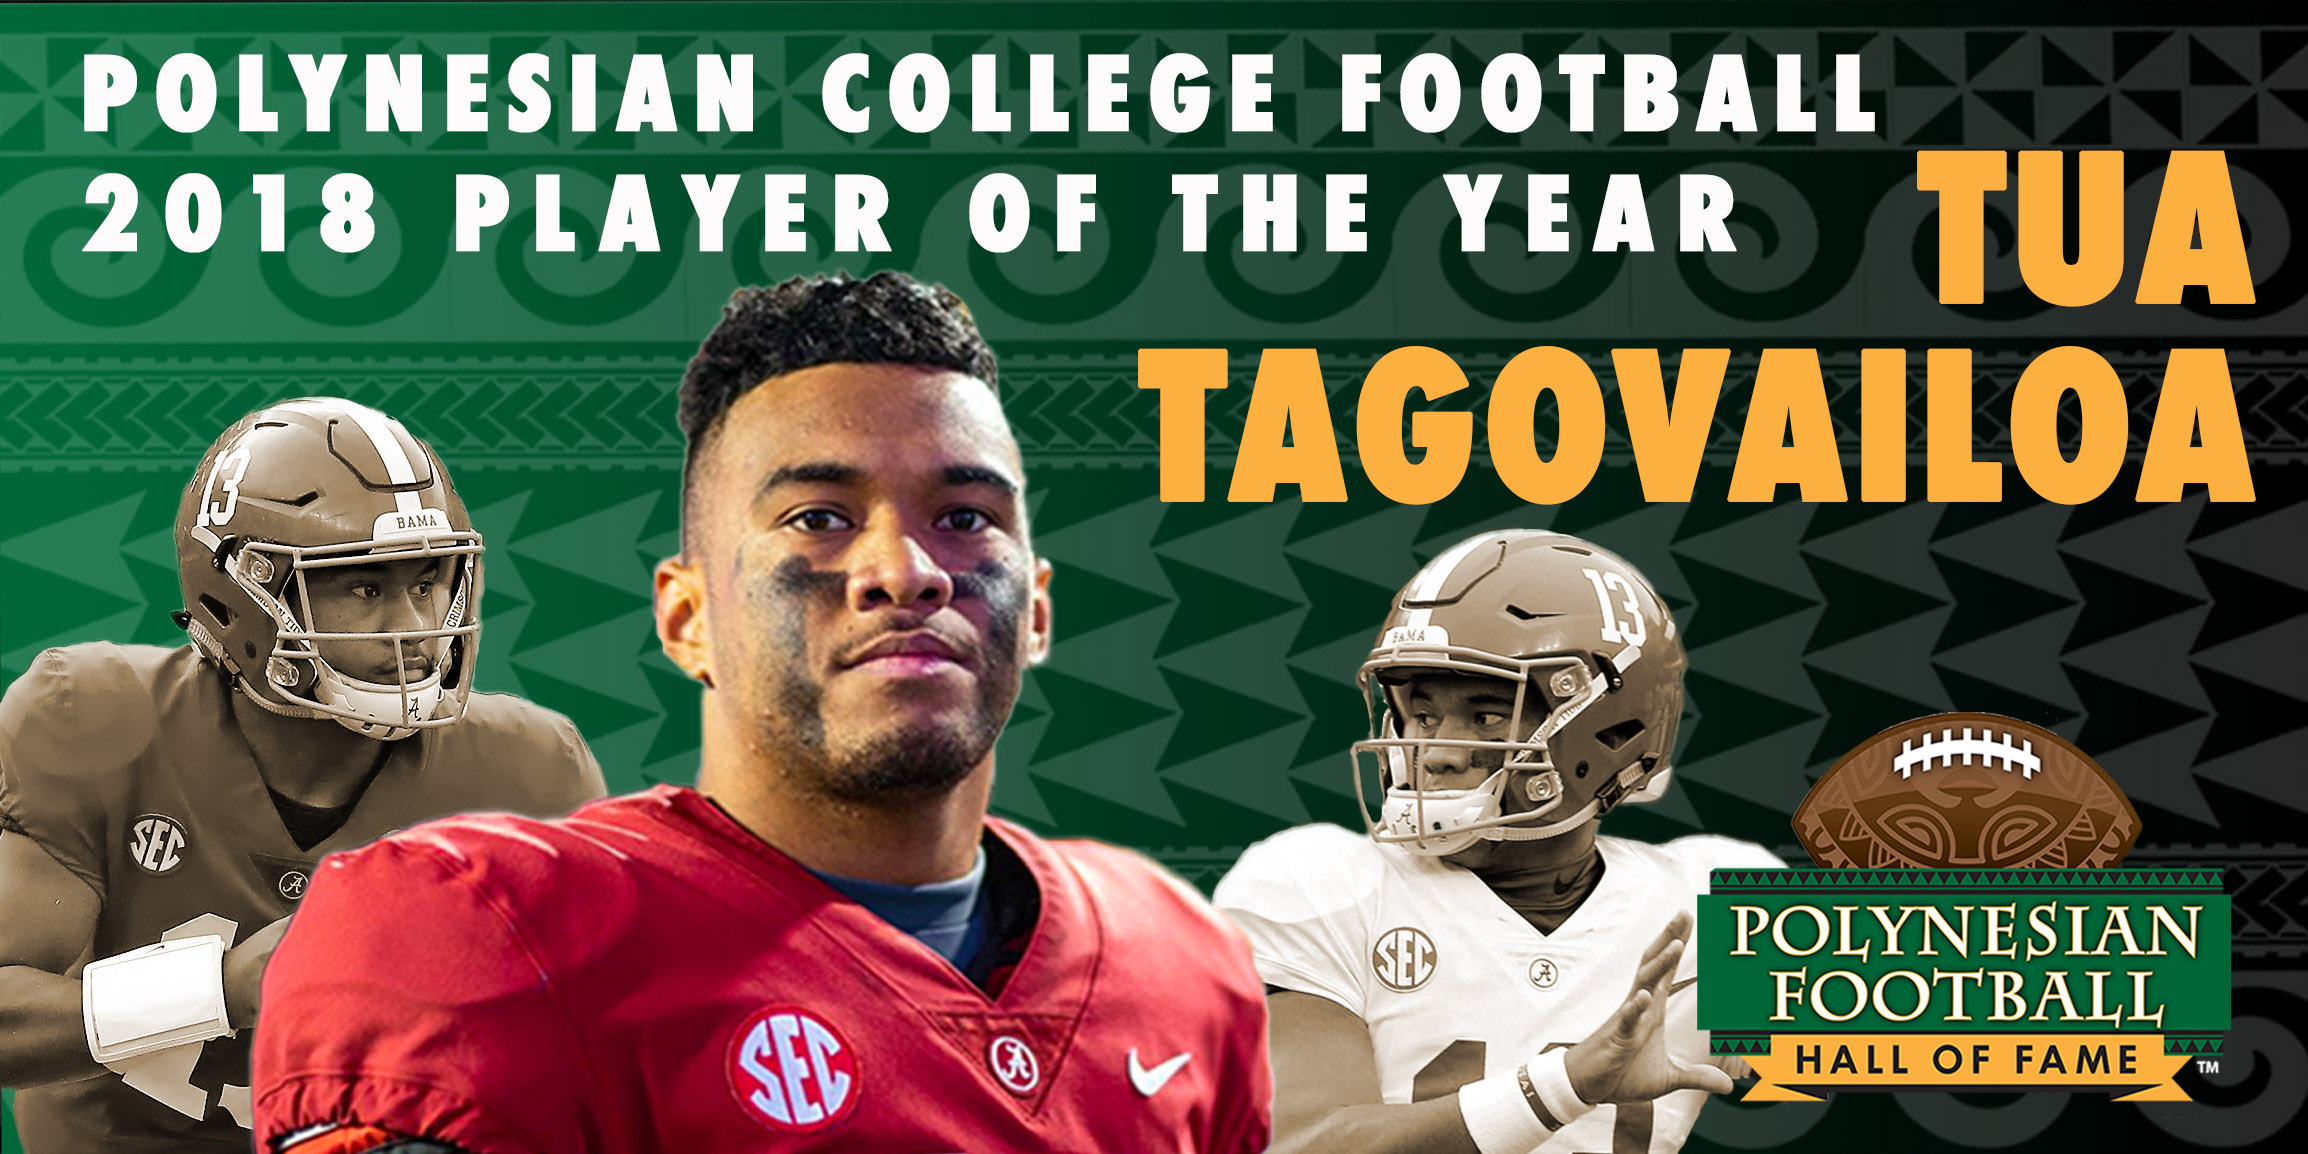 Tua Tagovailoa honors his Polynesian roots at 2018 College Football Player of the Year event